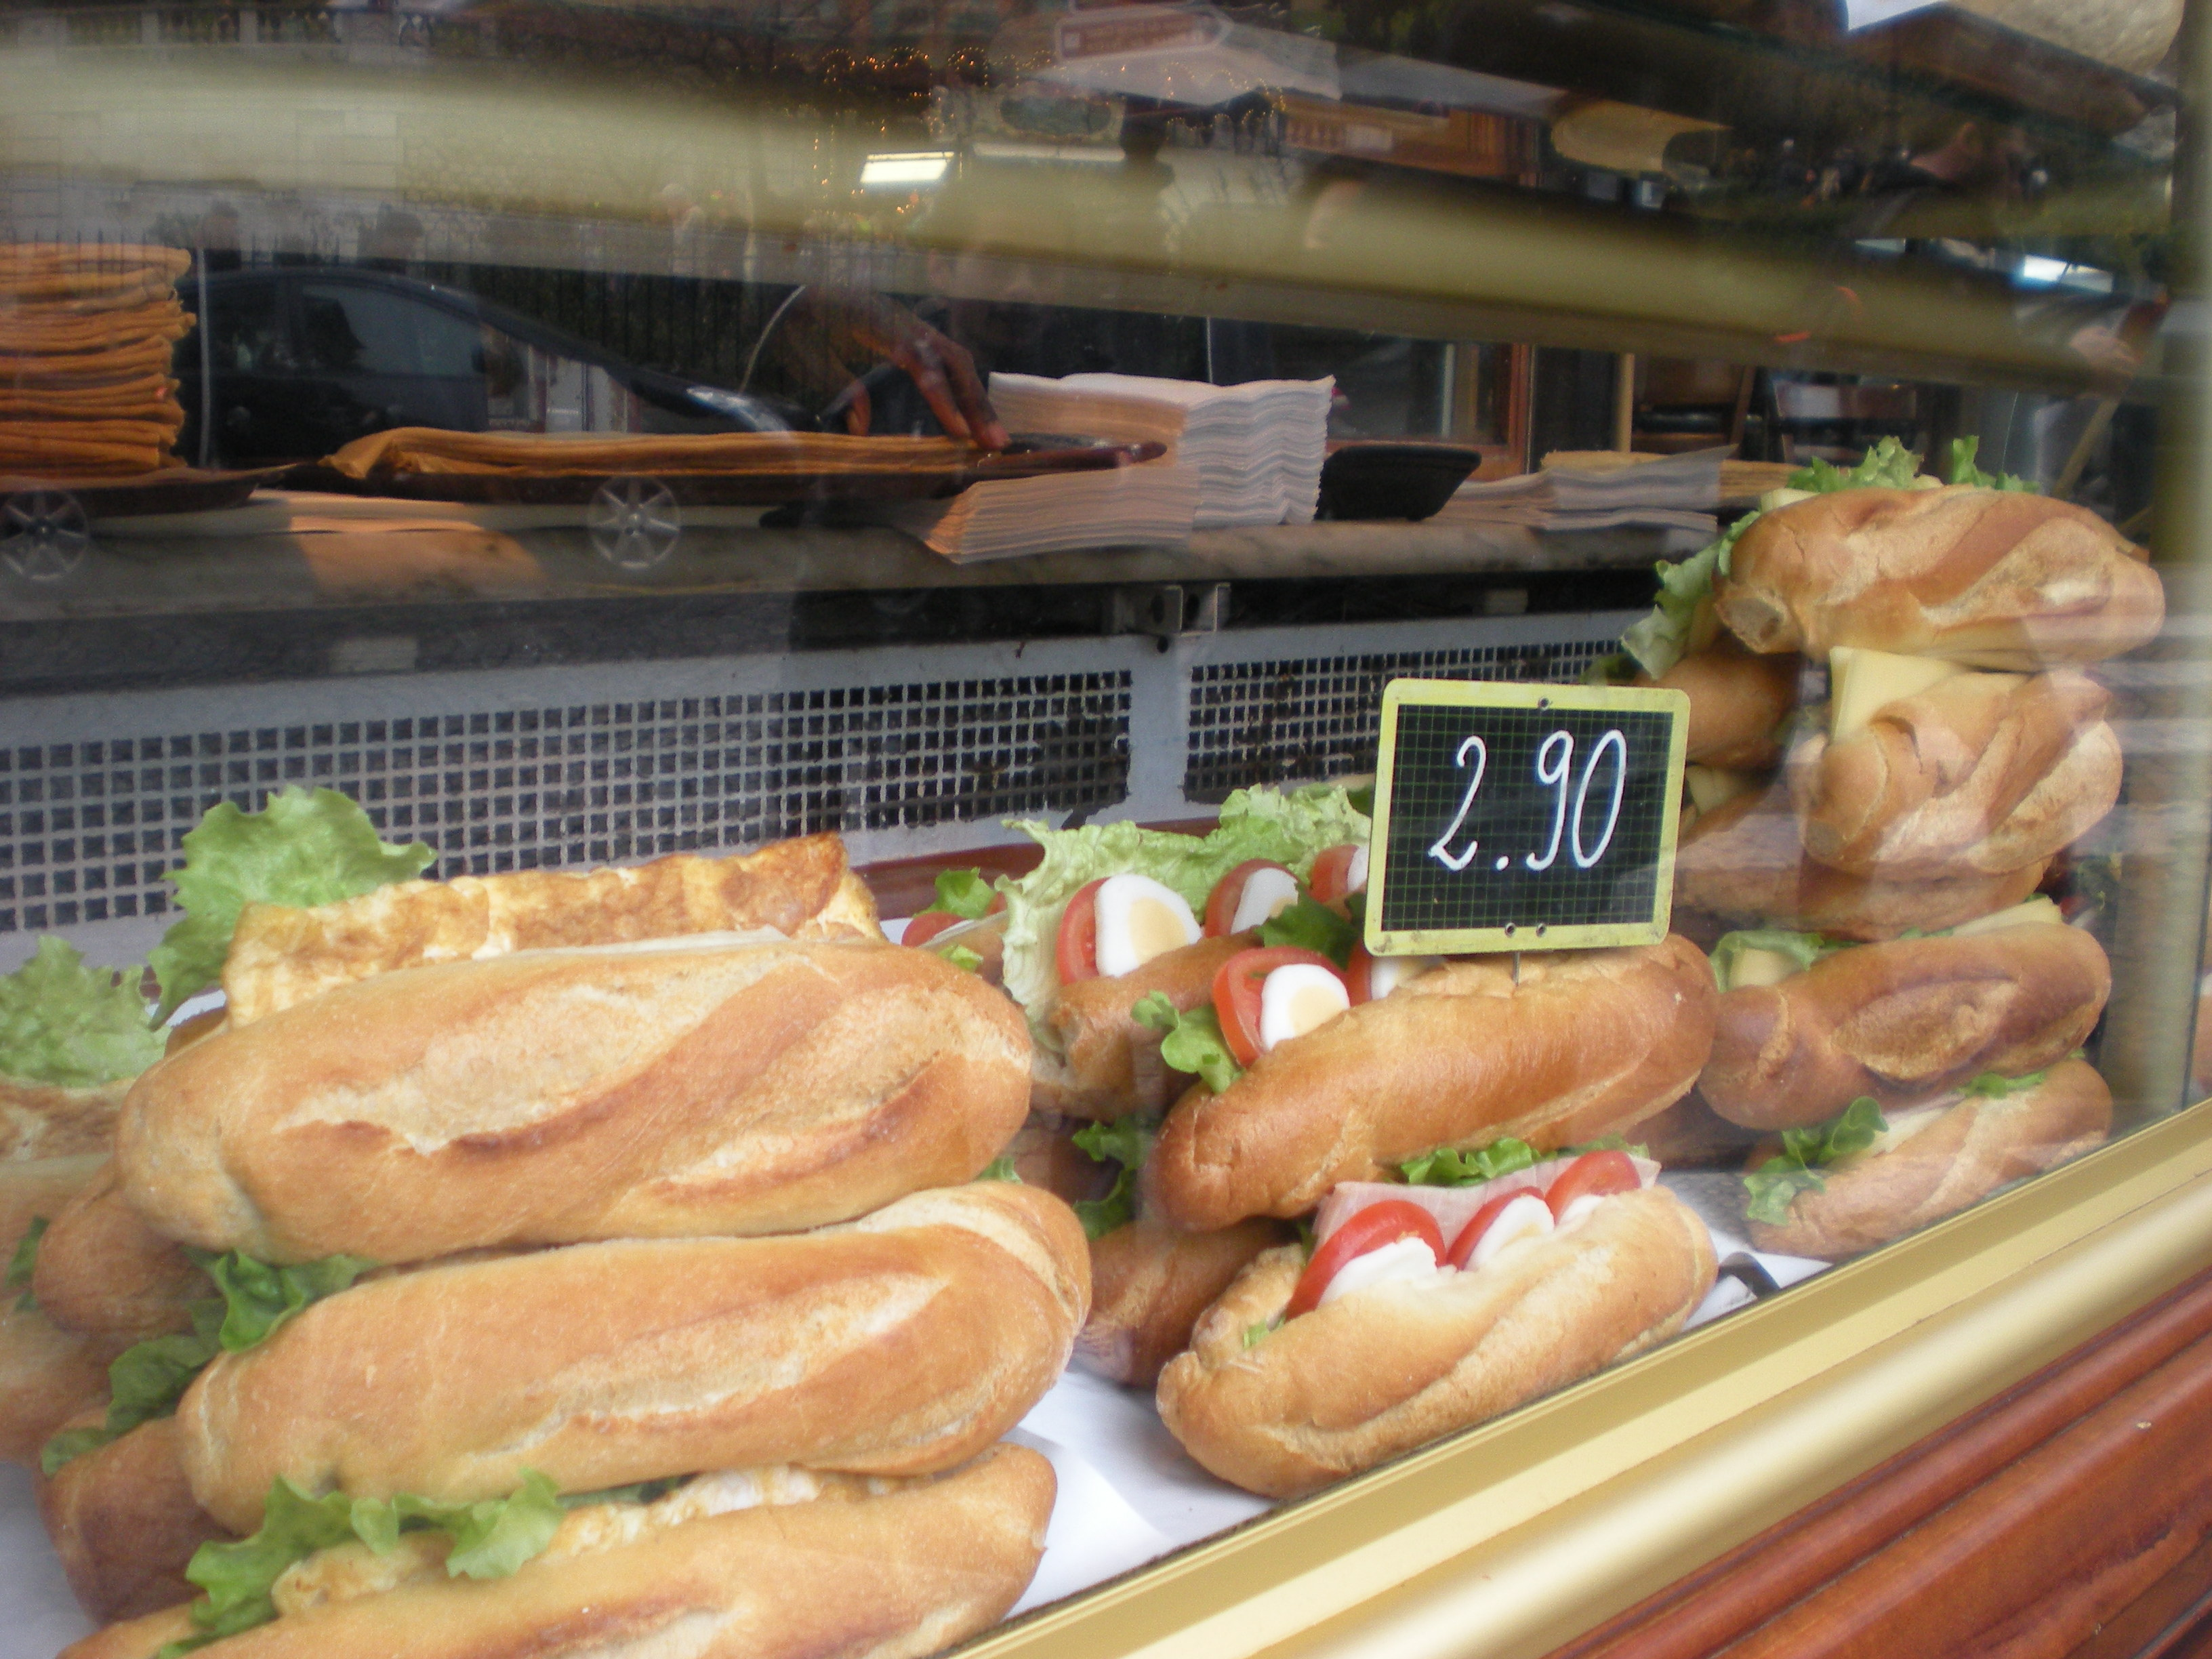 Walk down the street while you eat a sandwich, you can feel like a Parisienne!